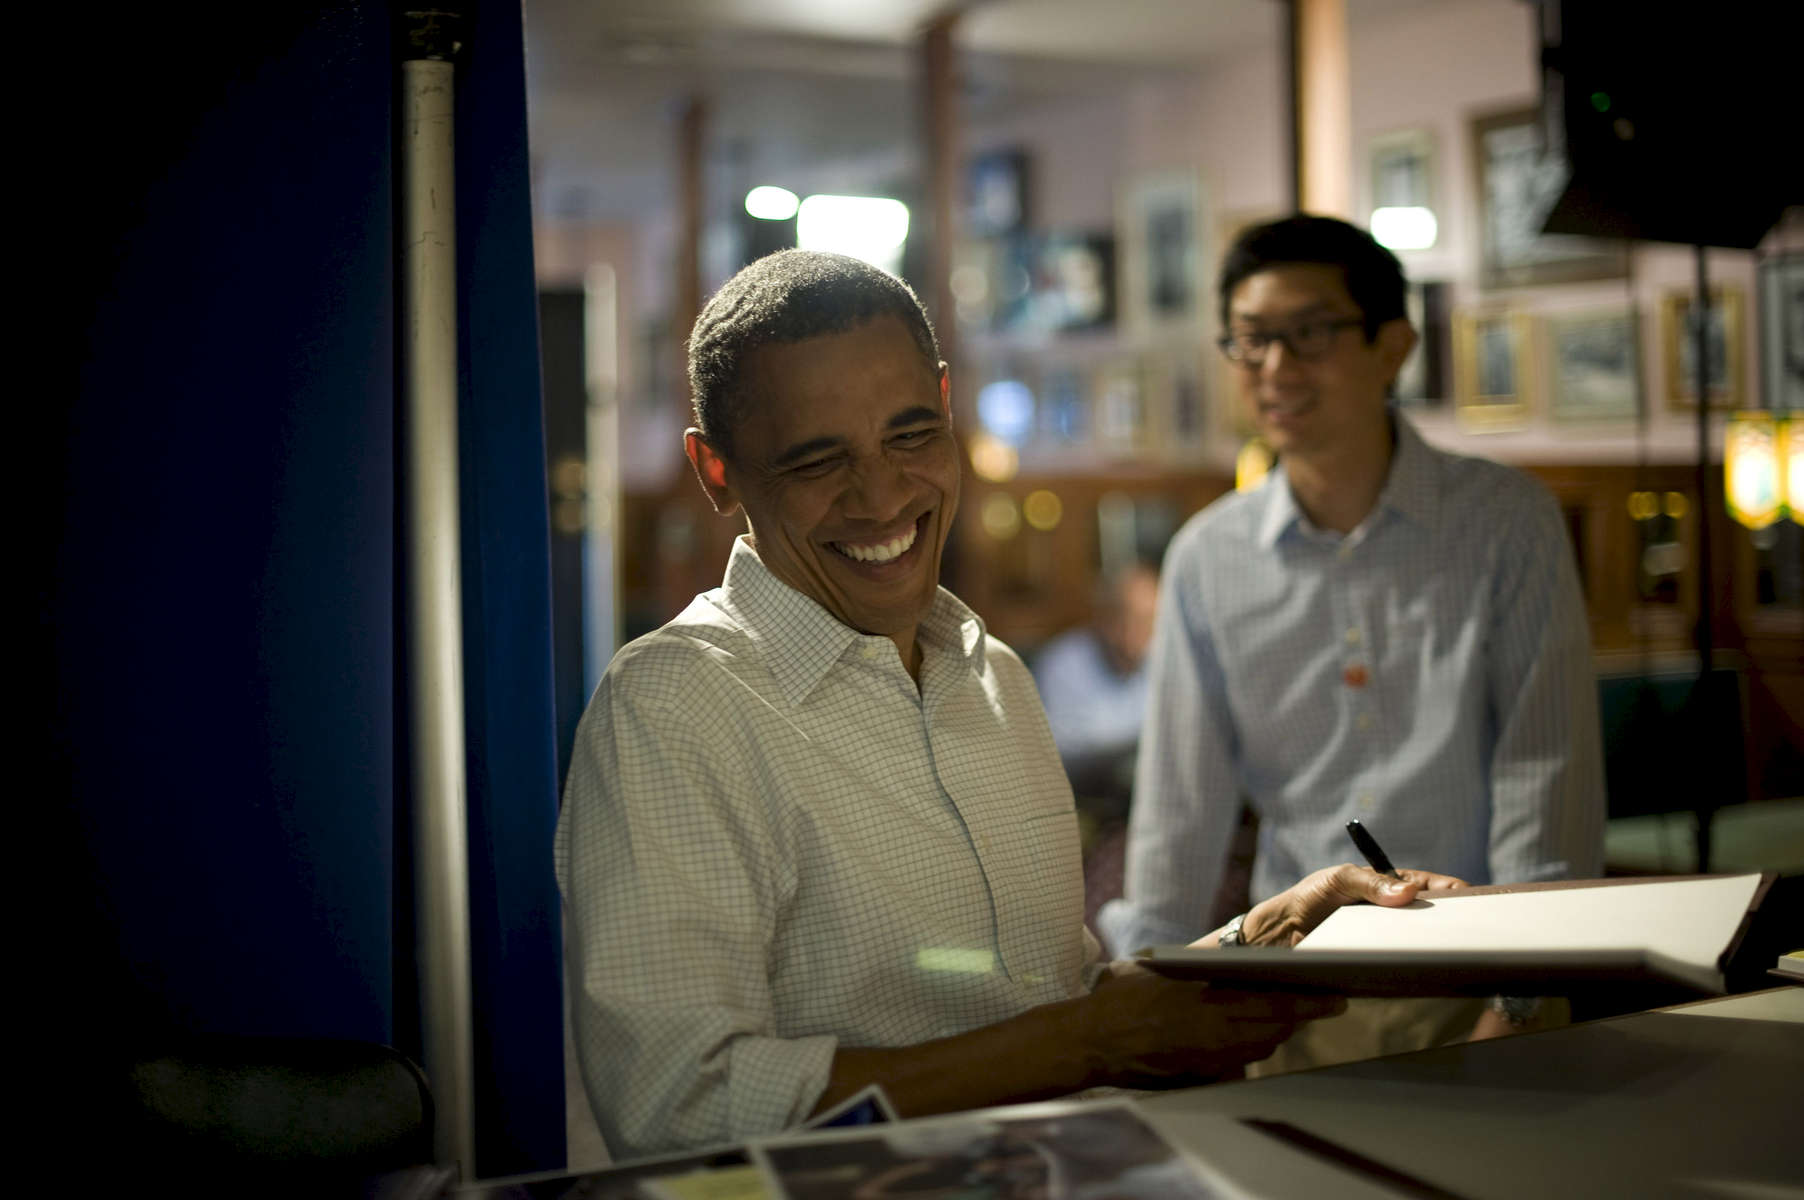 August 15, 2012- DAVENPORT, IA: President Barack Obama laughs as he signs a book backstage at Logomarcino's Ice Cream Shoppe in Davenport, Iowa. (Scout Tufankjian for Obama for America/Polaris)